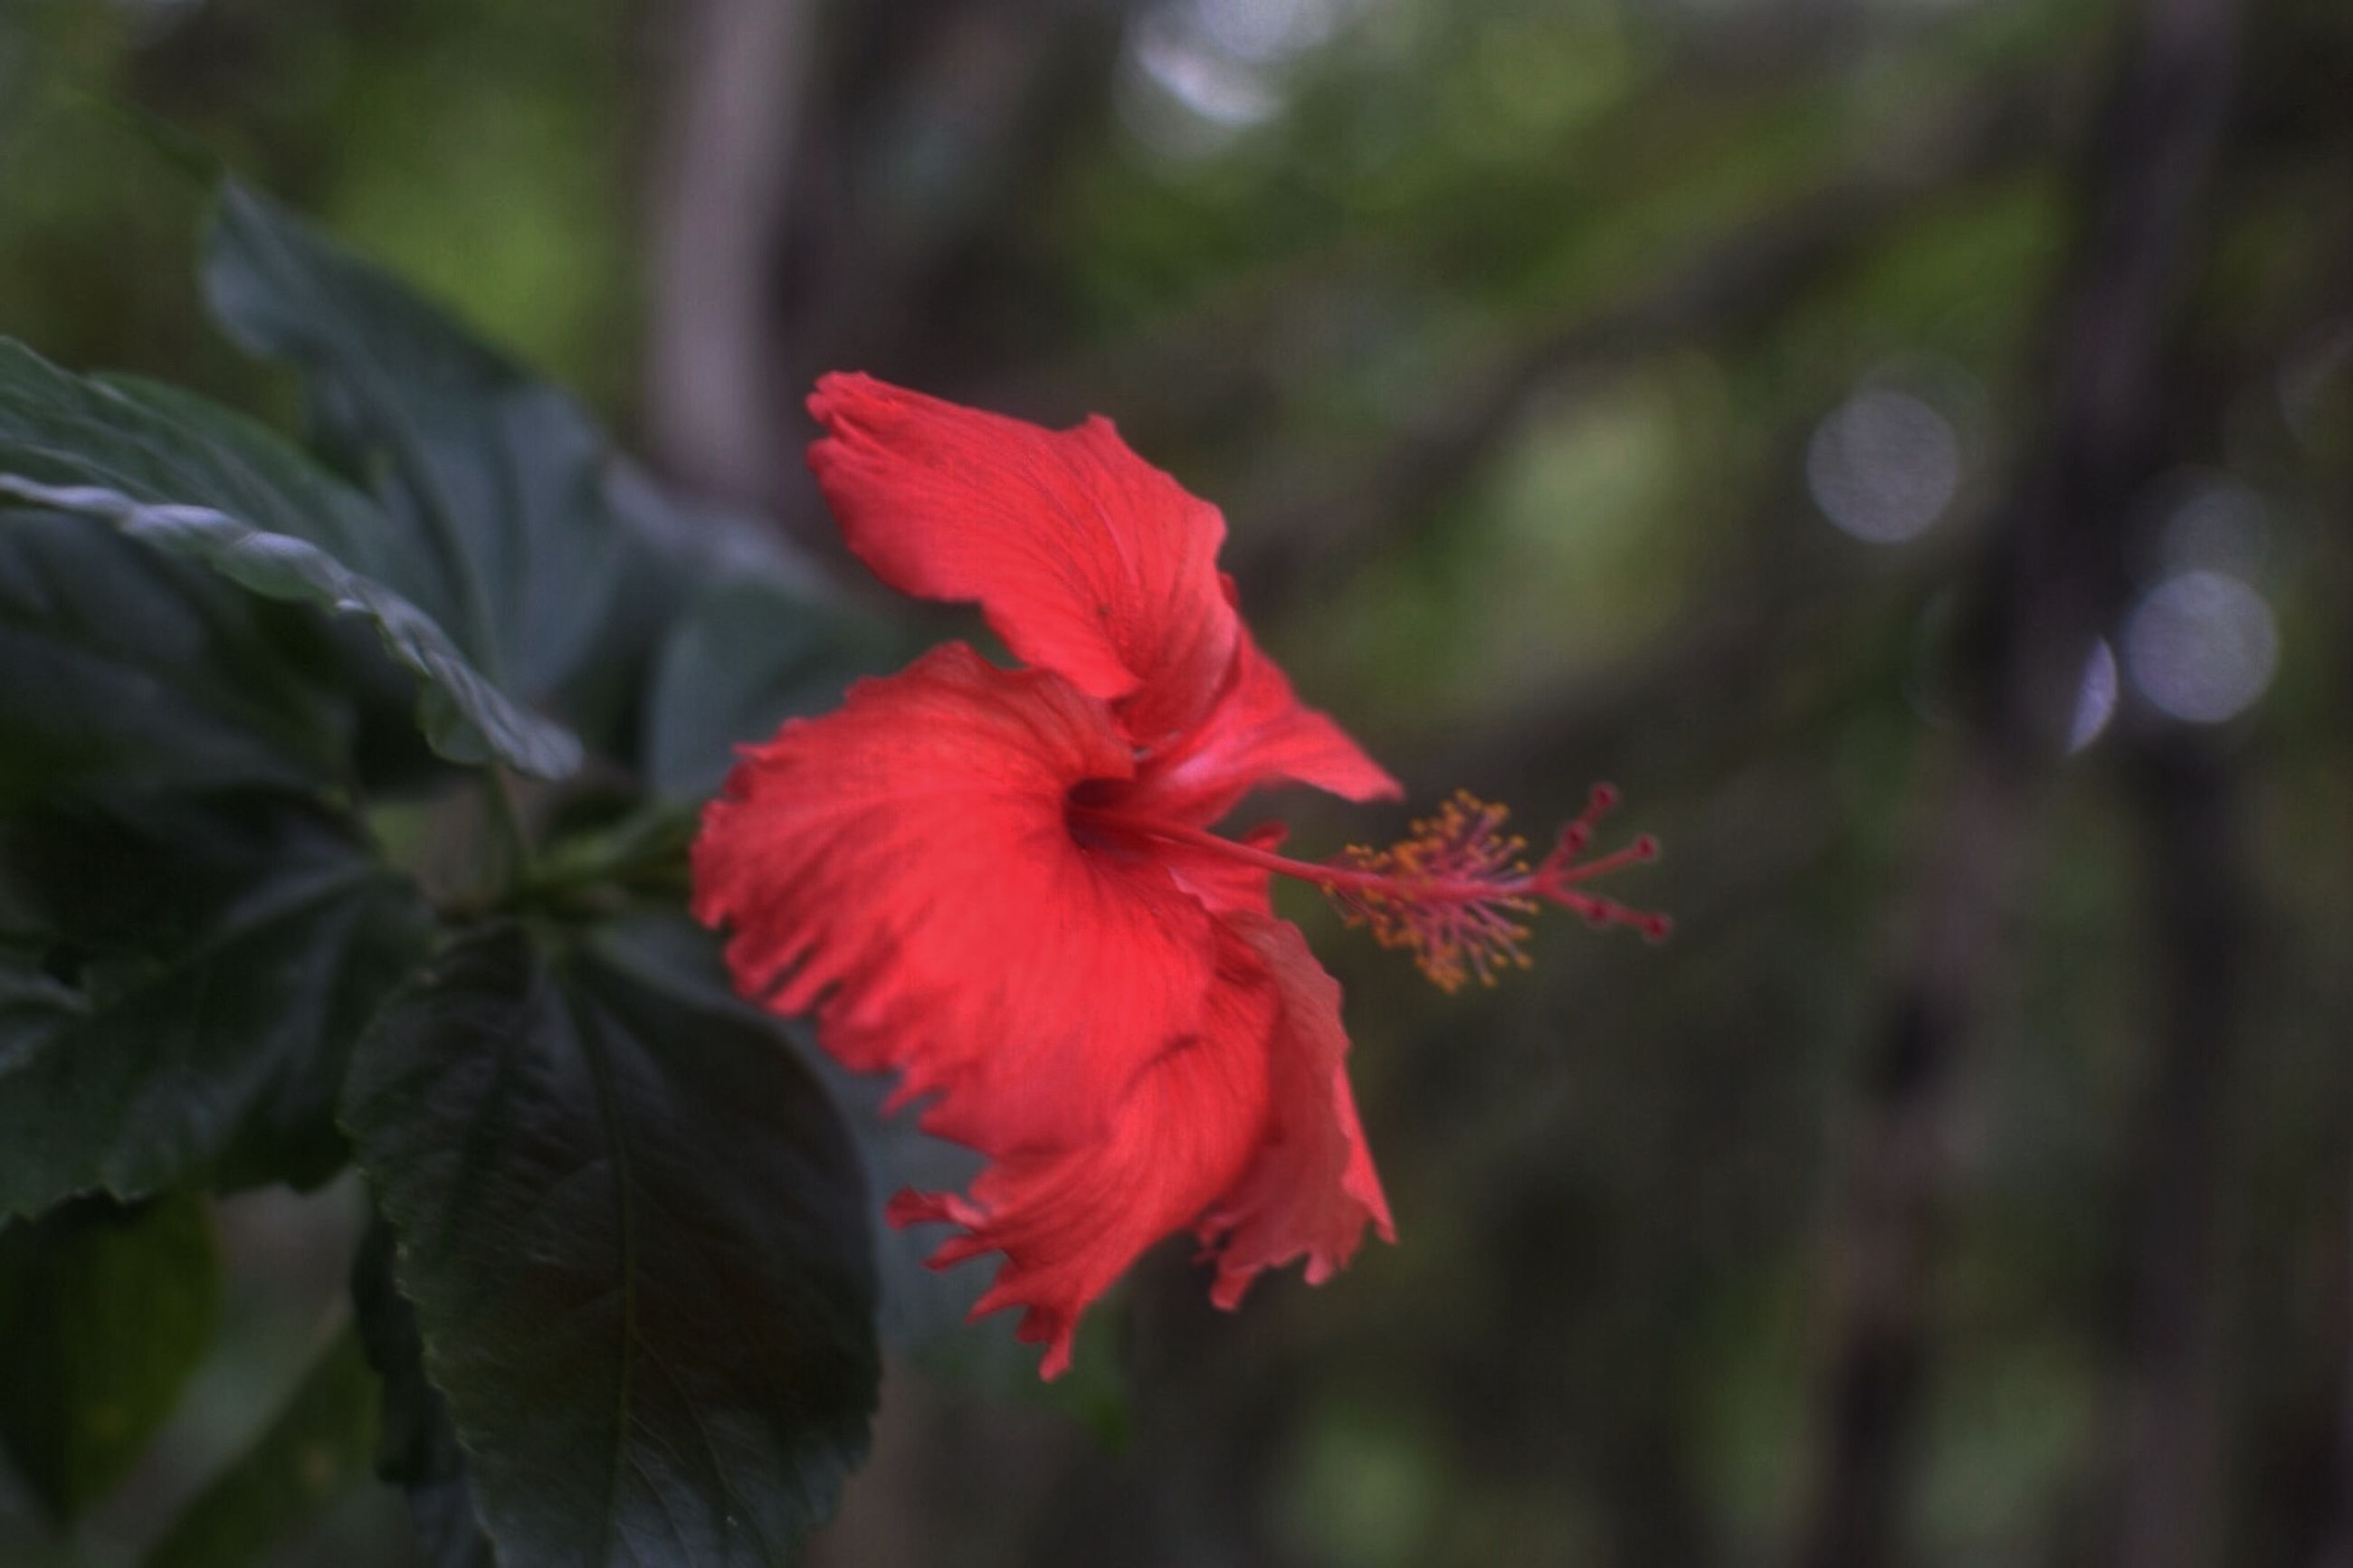 flower, petal, red, freshness, flower head, growth, fragility, focus on foreground, close-up, beauty in nature, plant, nature, blooming, leaf, single flower, in bloom, day, park - man made space, outdoors, selective focus